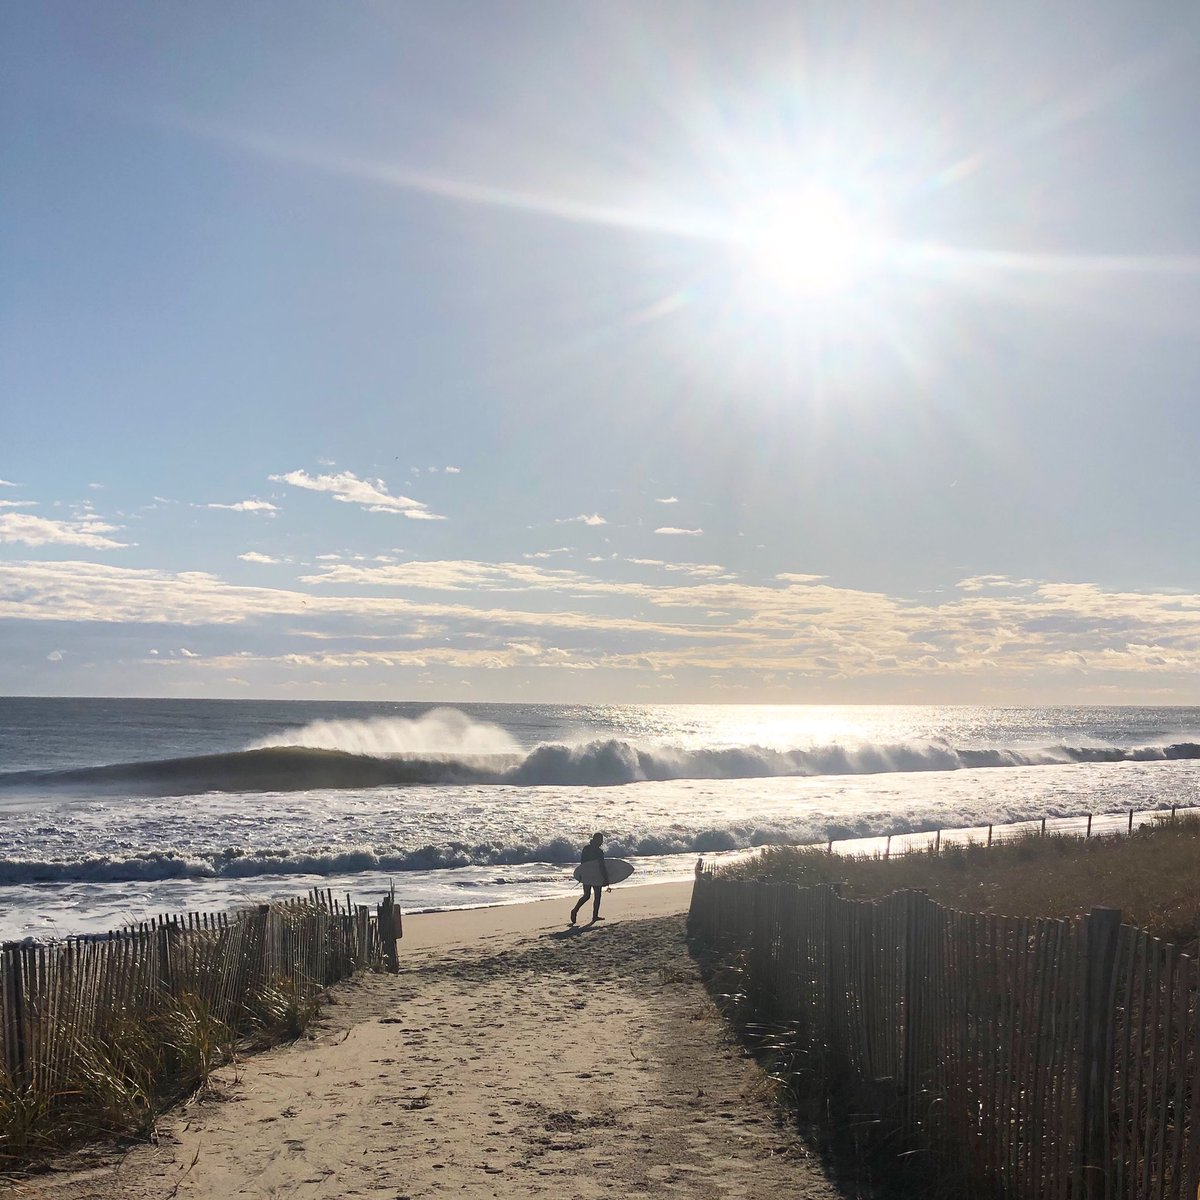 #wednesdaywisdom The calendar may say December but the beach is still the place to be. Wetsuit on and some beautiful #waves rolling in #bethanybeach  #surf #bethanybeachdelaware #Delaware #livebayside #beachrealestate #beachlife #coastaldelaware #visitdelaware #thisisdelaware